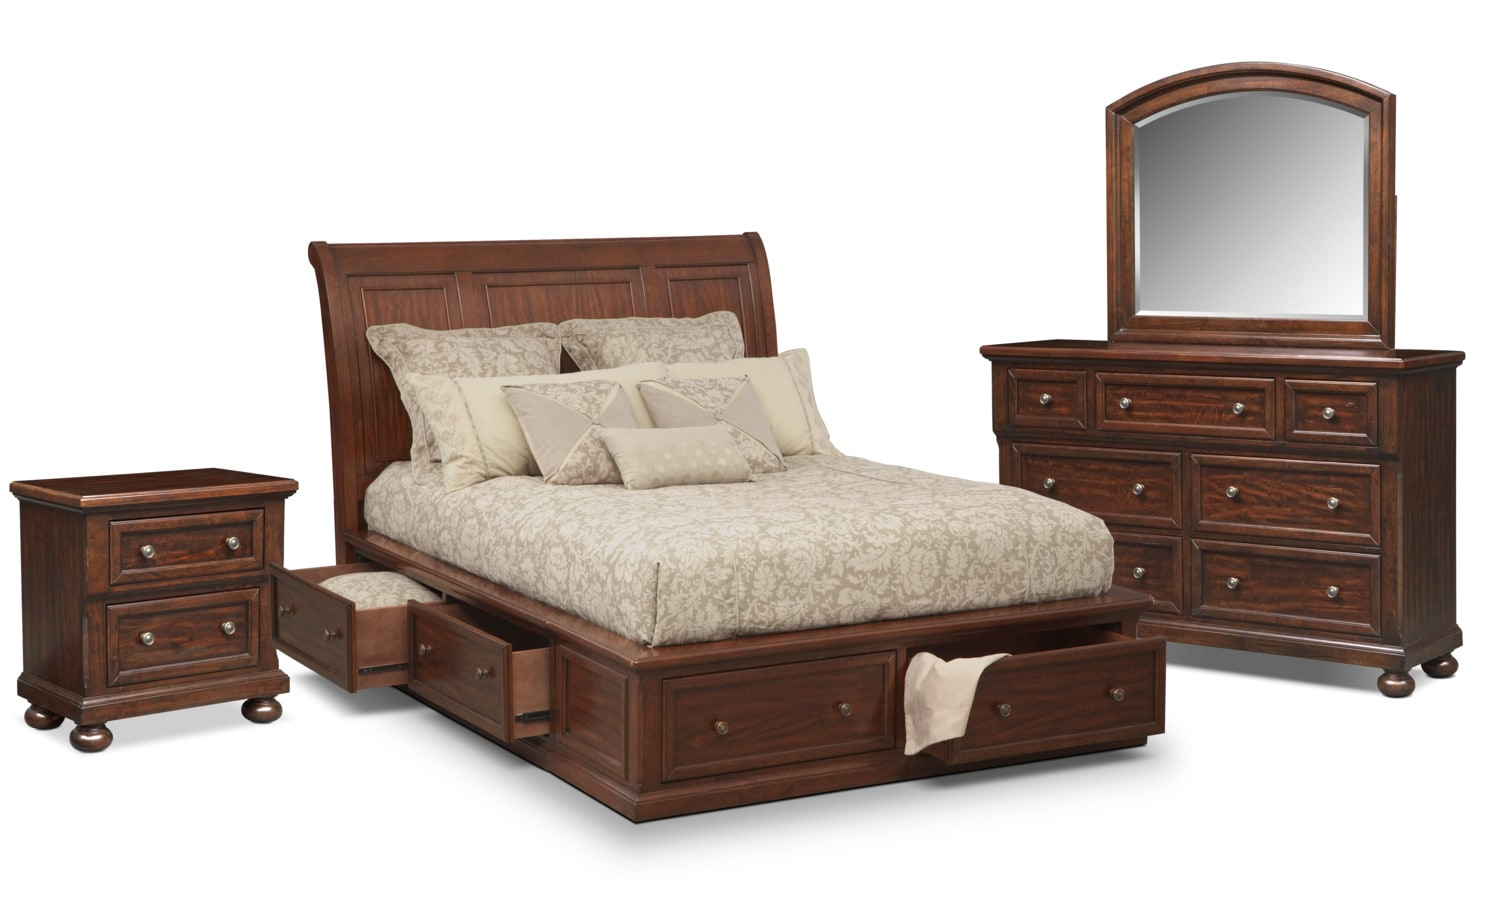 Bedroom Furniture - Hanover 6-Piece Storage Bedroom Set with Nightstand, Dresser and Mirror